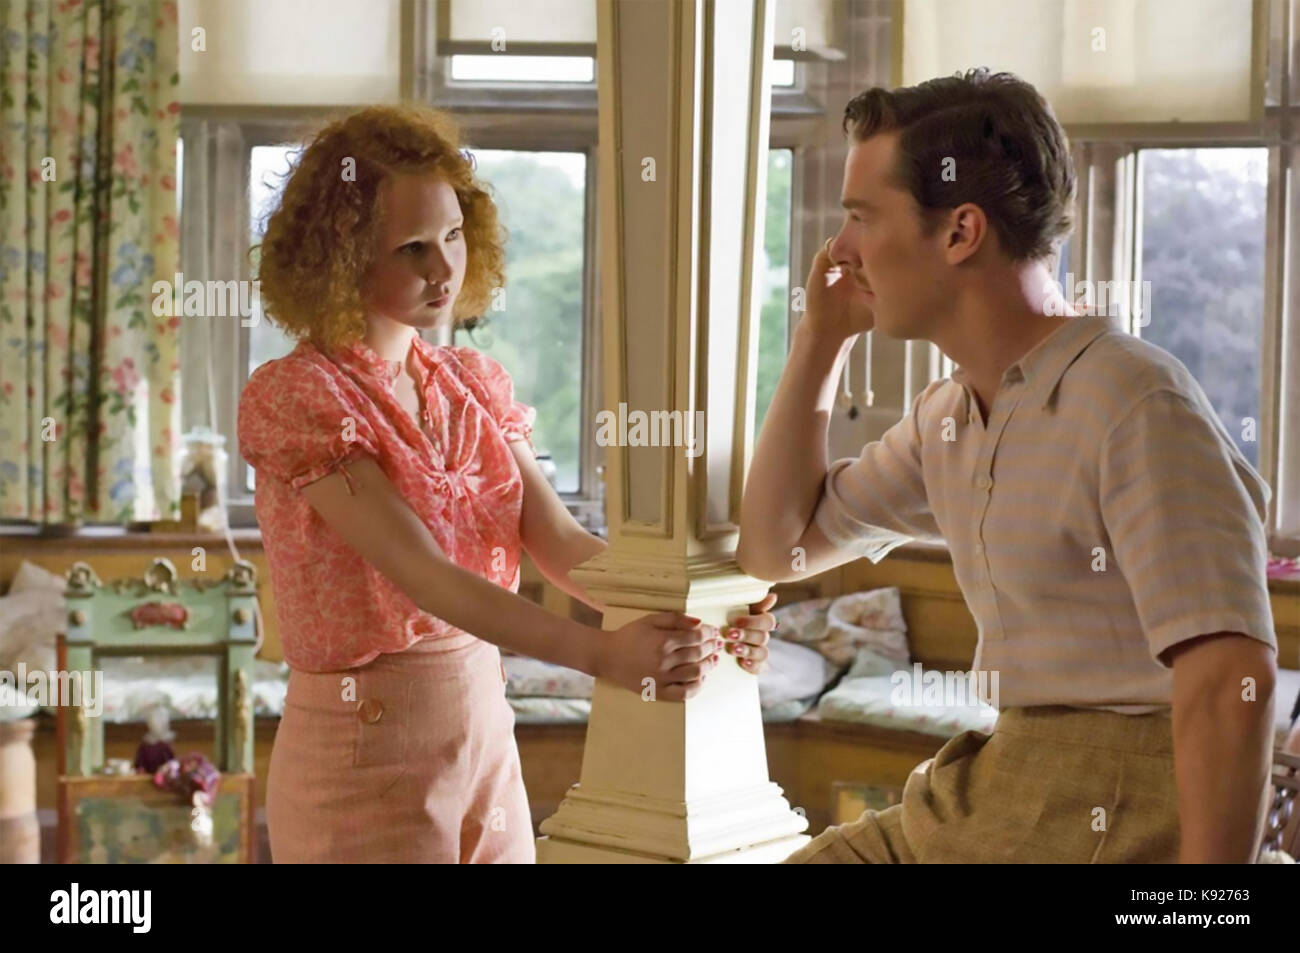 ATONEMENT 2007 Universal Pictures film with Benedict Cumberbatch and Juno Temple - Stock Image